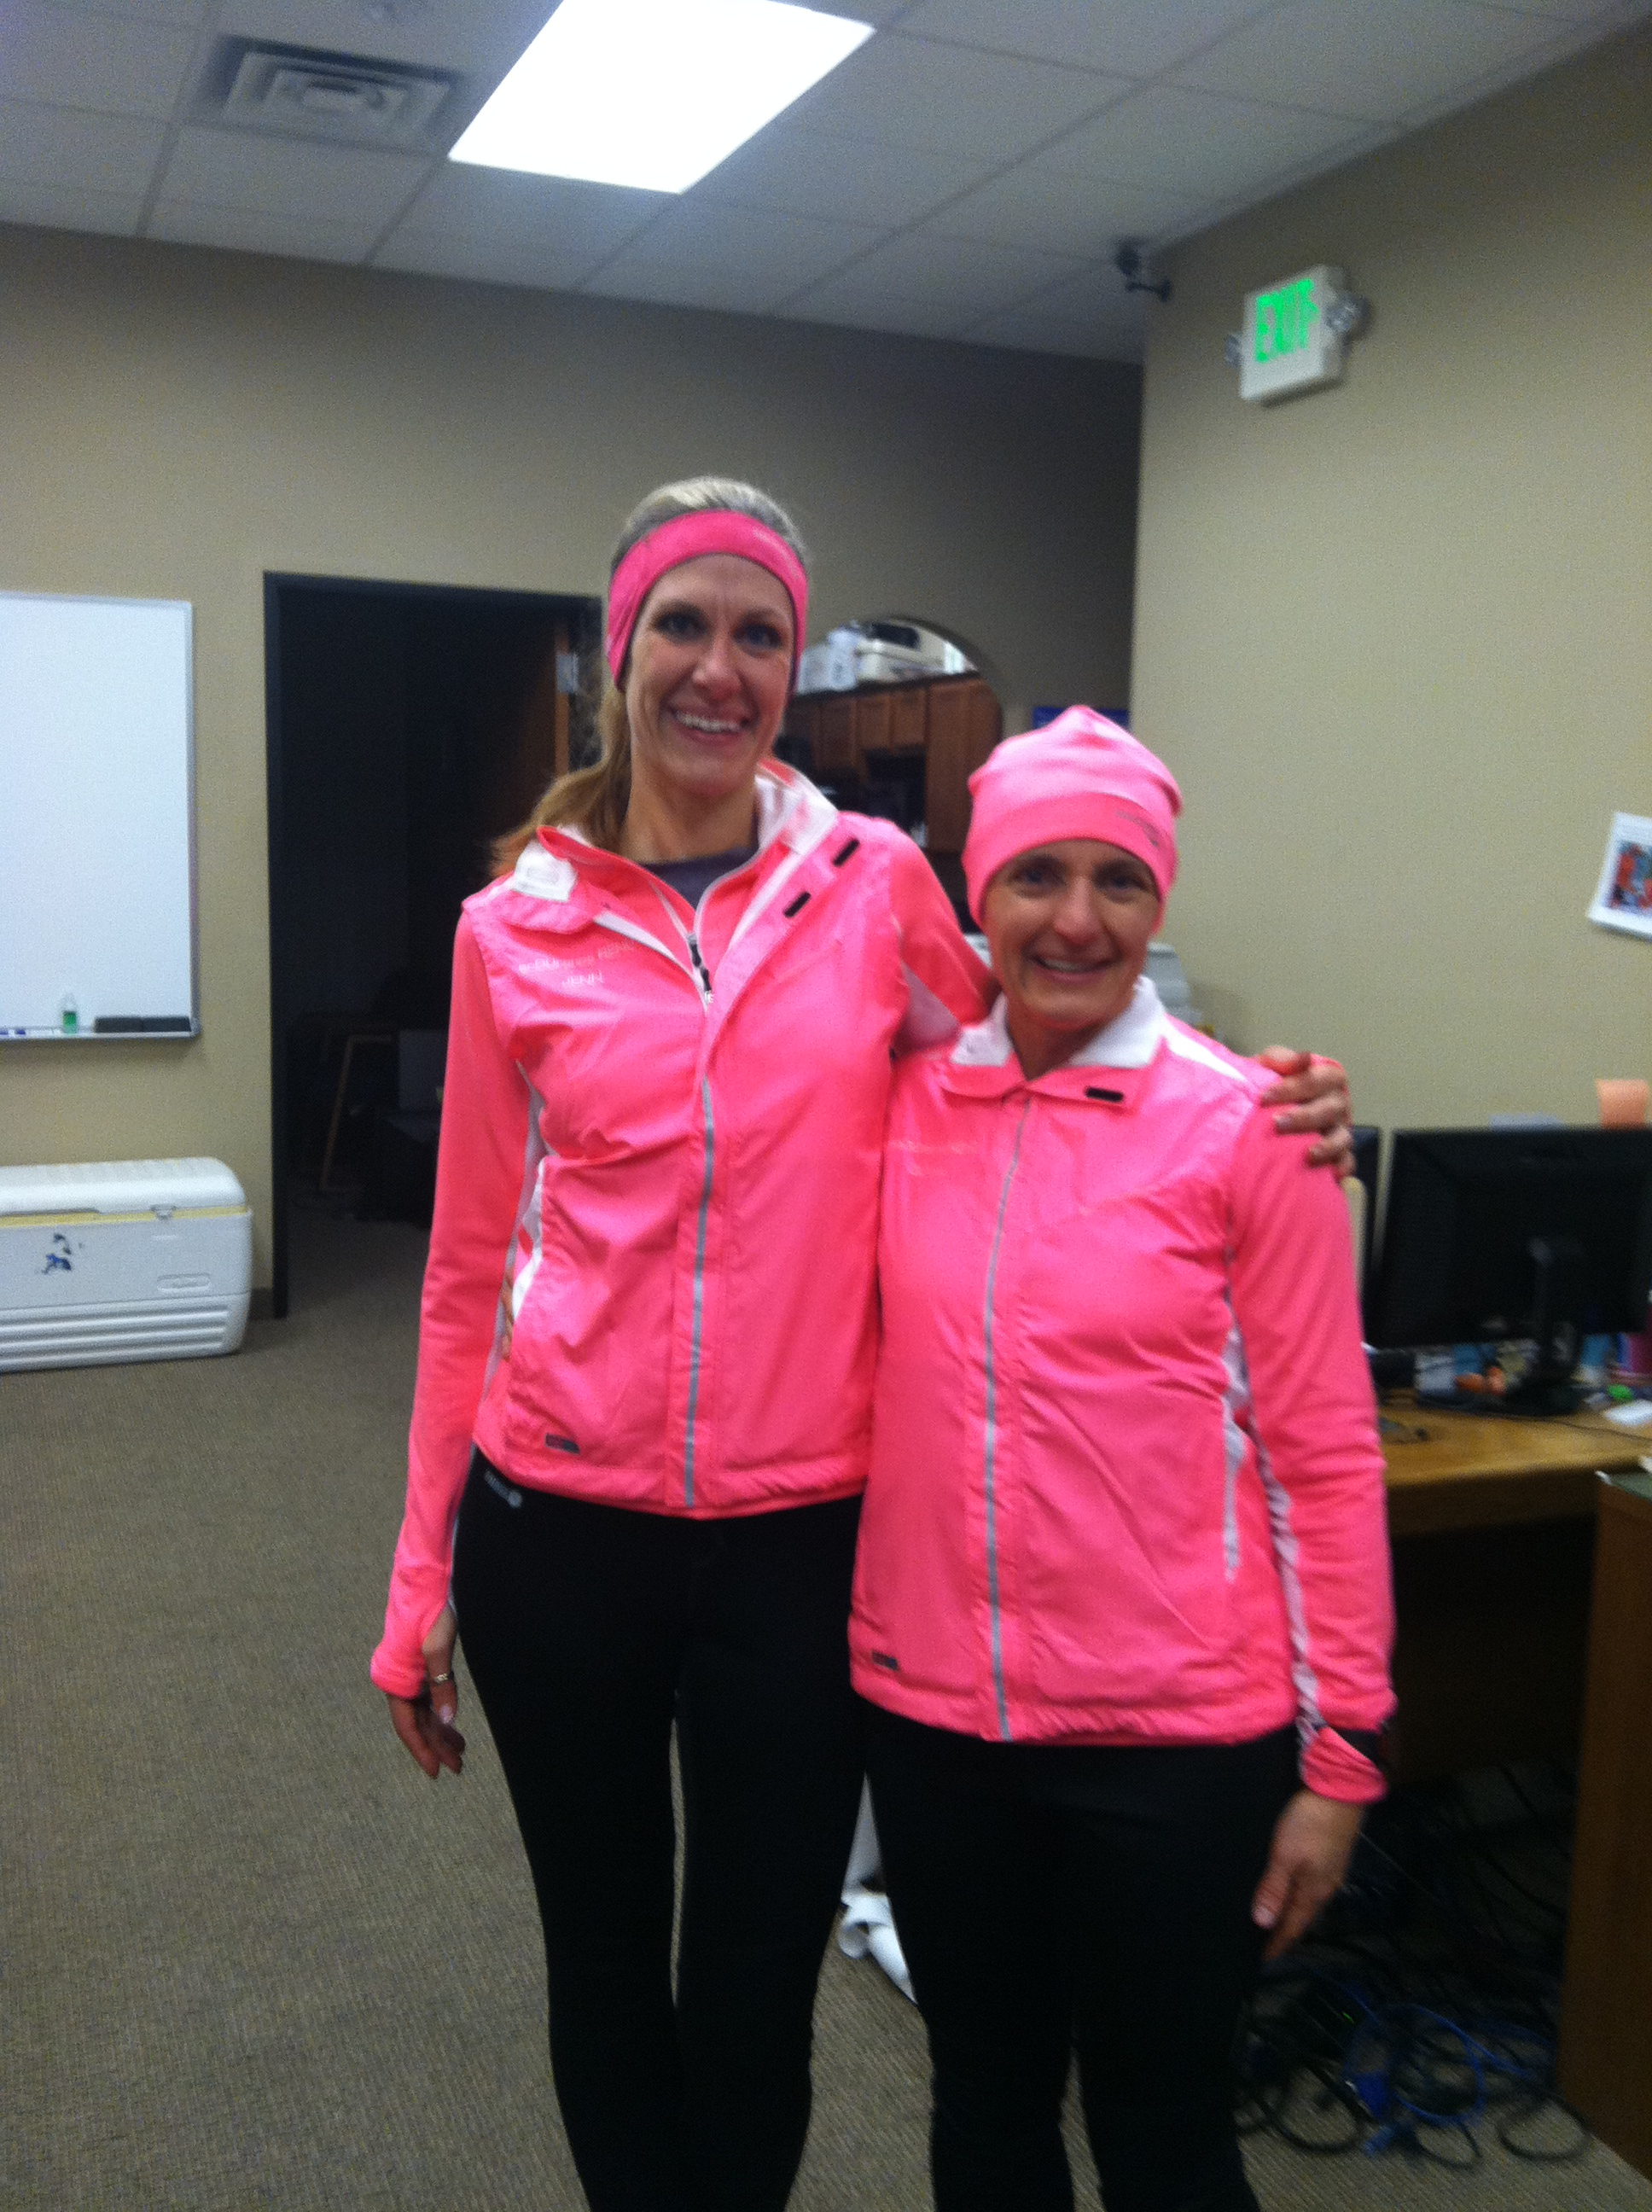 Olivia and me in our team gear post 8 mile run!!!